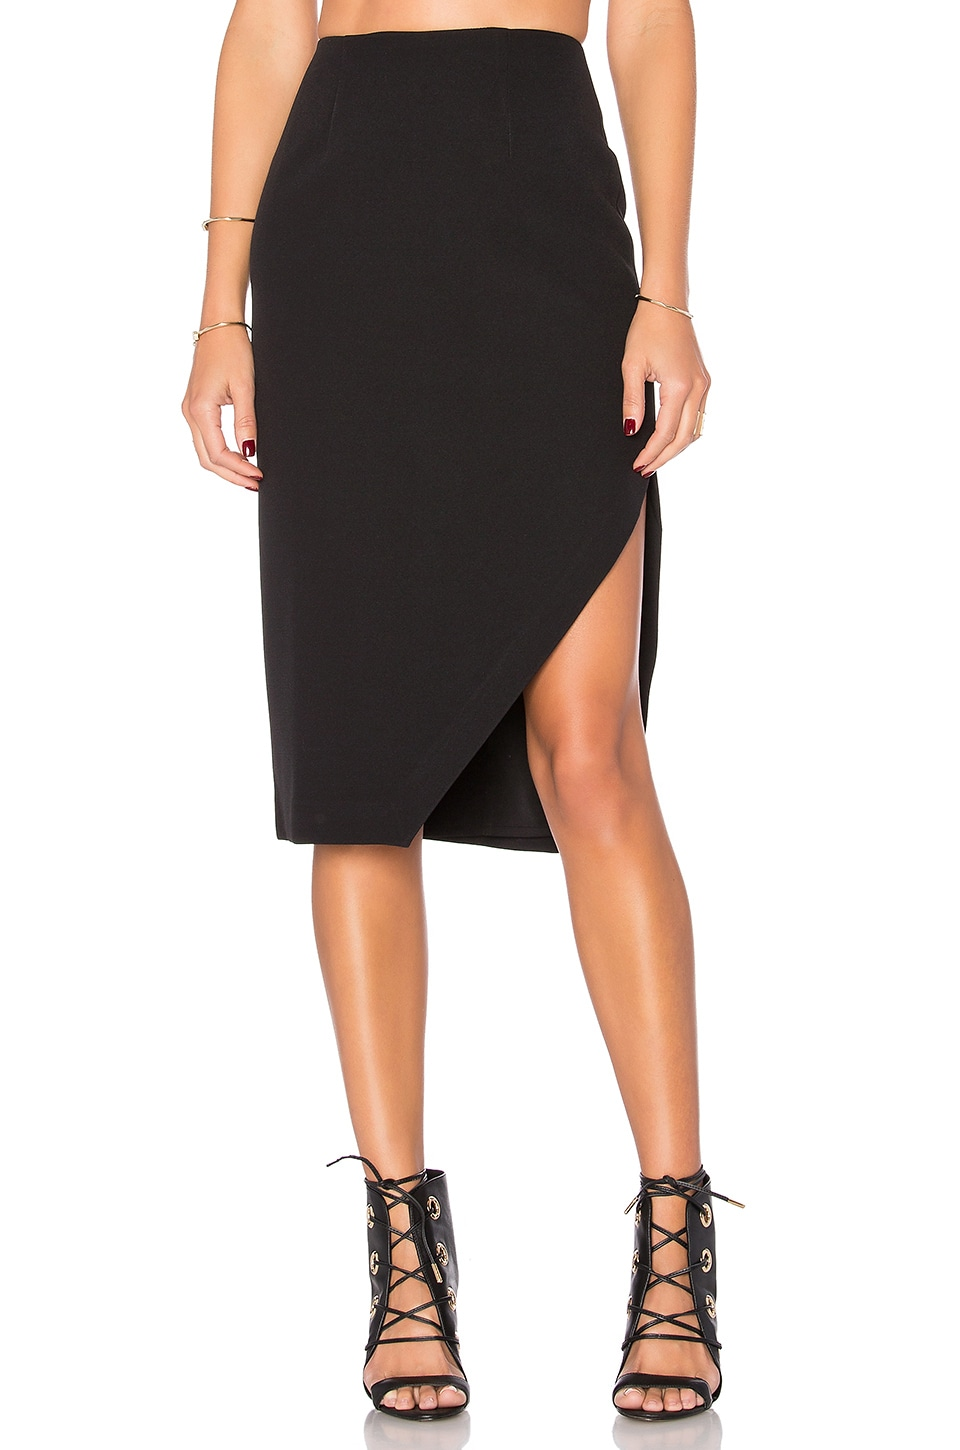 KENDALL + KYLIE Slit Midi Skirt in Black